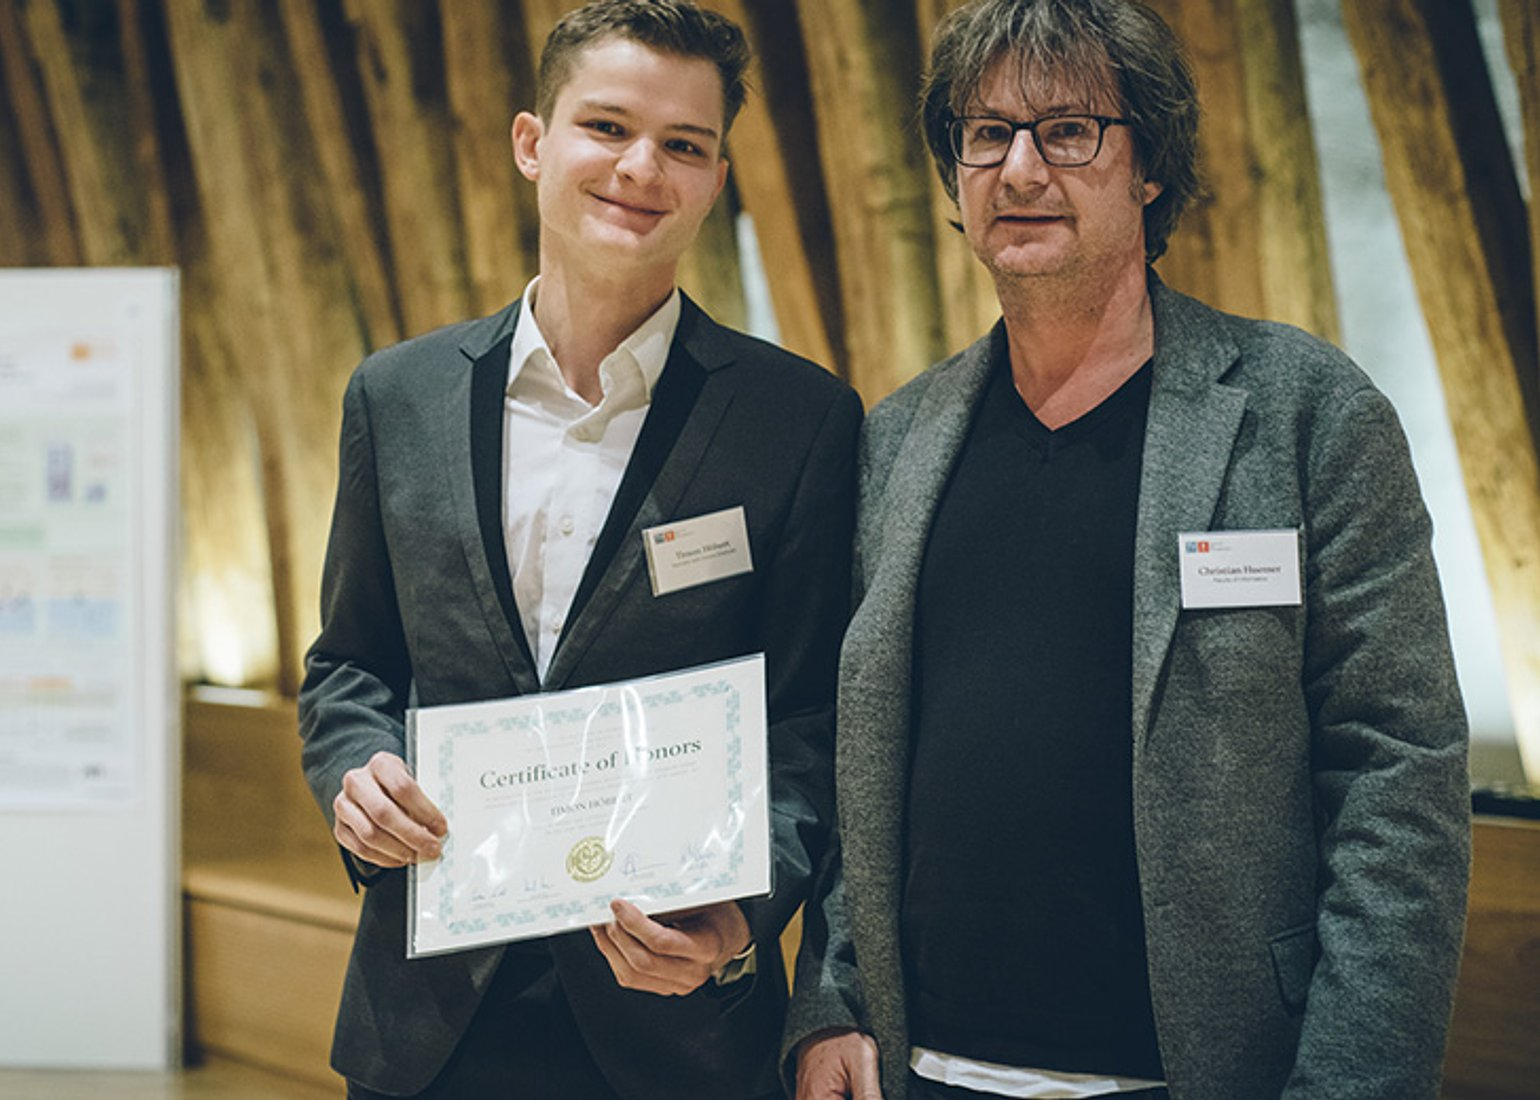 Timon and Dean of Studies, Christian Huemer, at the 28th Epilog receiving his certificate.